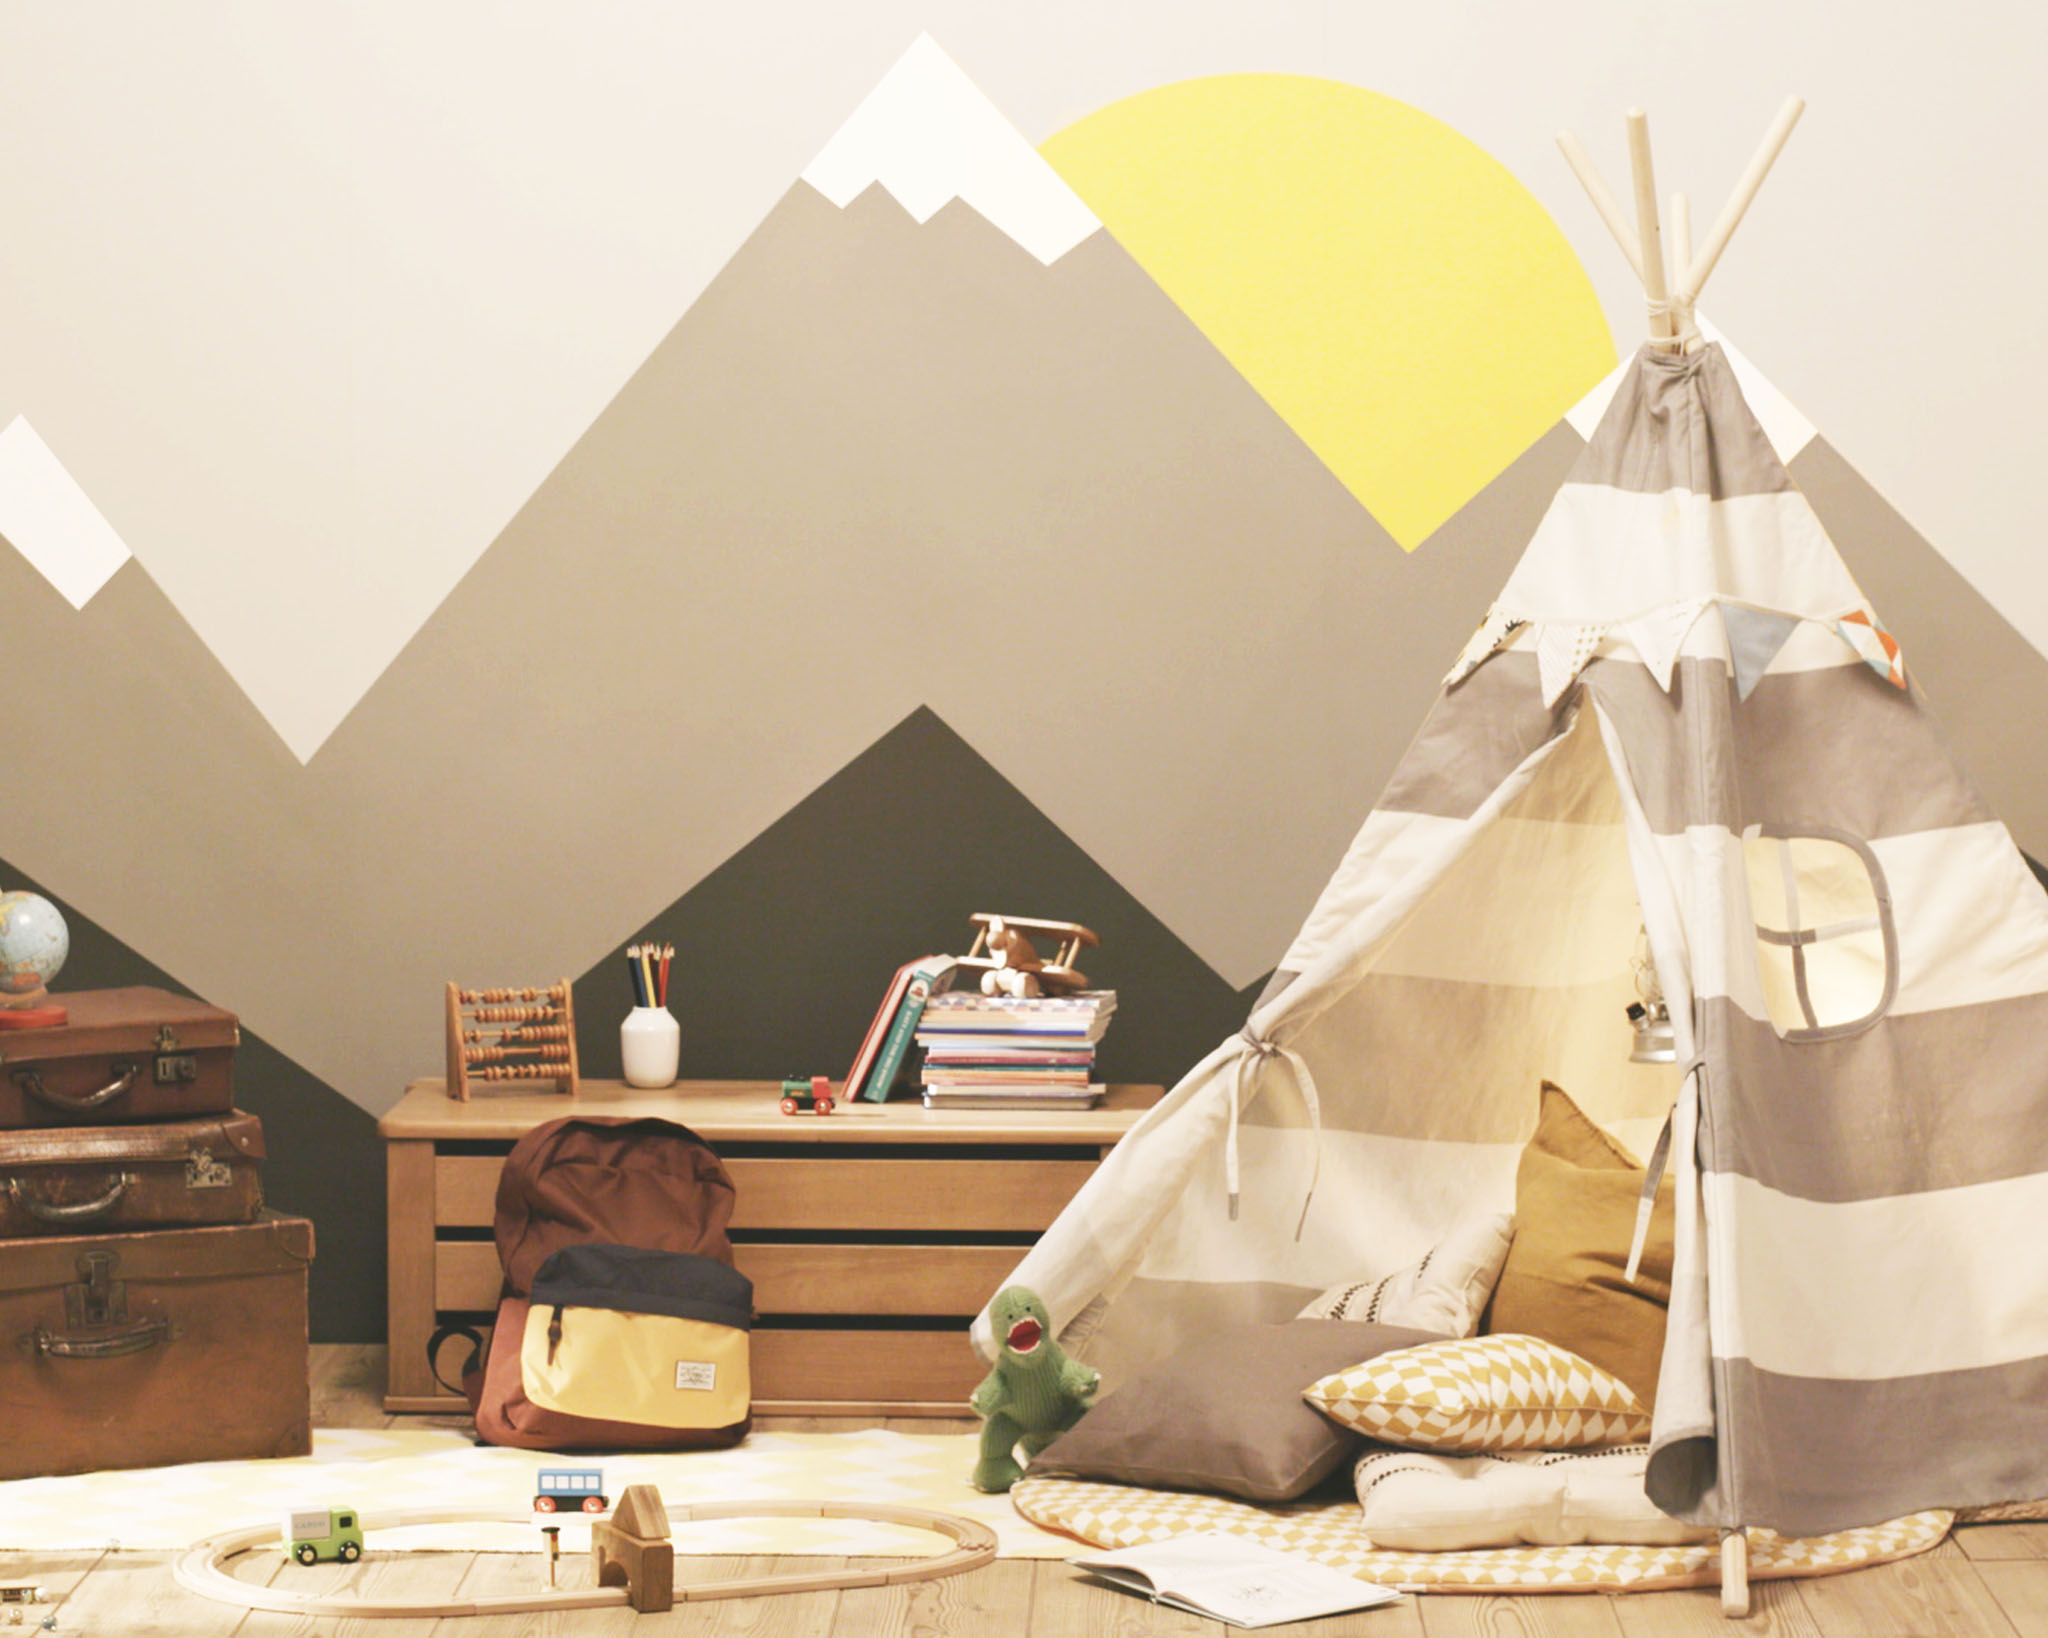 See how simple it is to create an adventure-themed bedroom for your boy